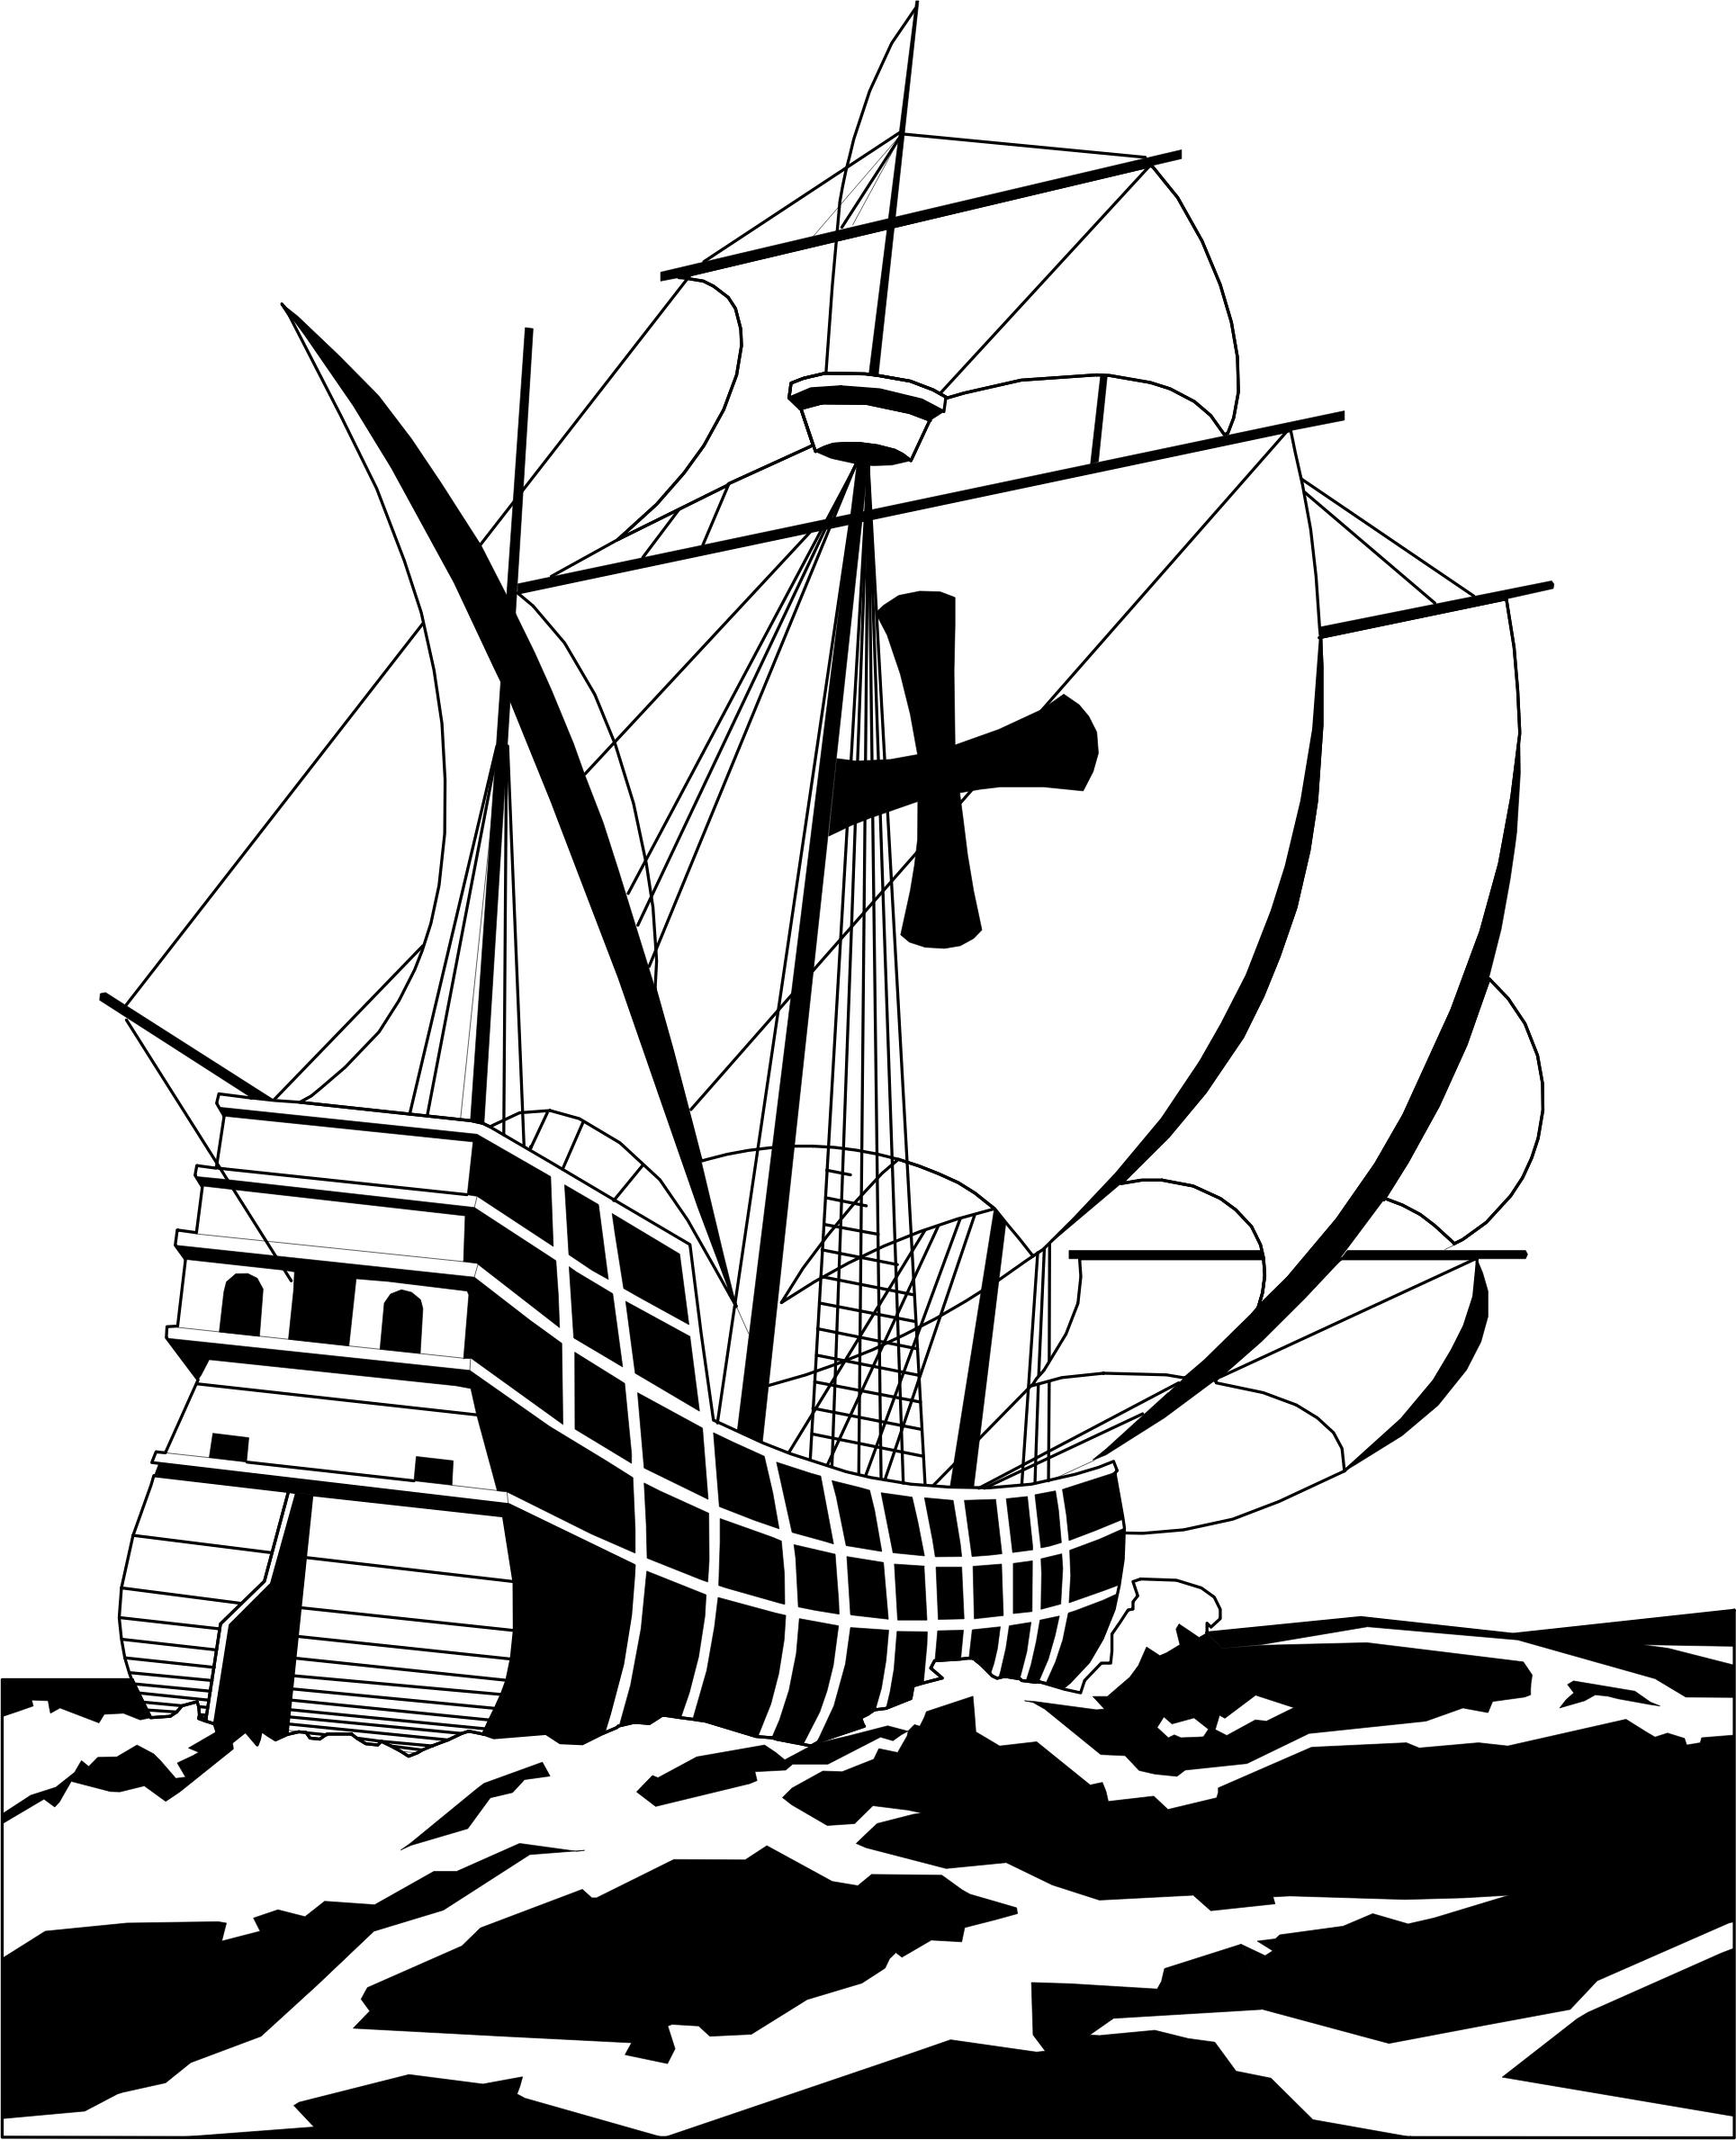 Whaling ship clipart jpg royalty free Whaling Ship Drawing | Free download best Whaling Ship ... jpg royalty free